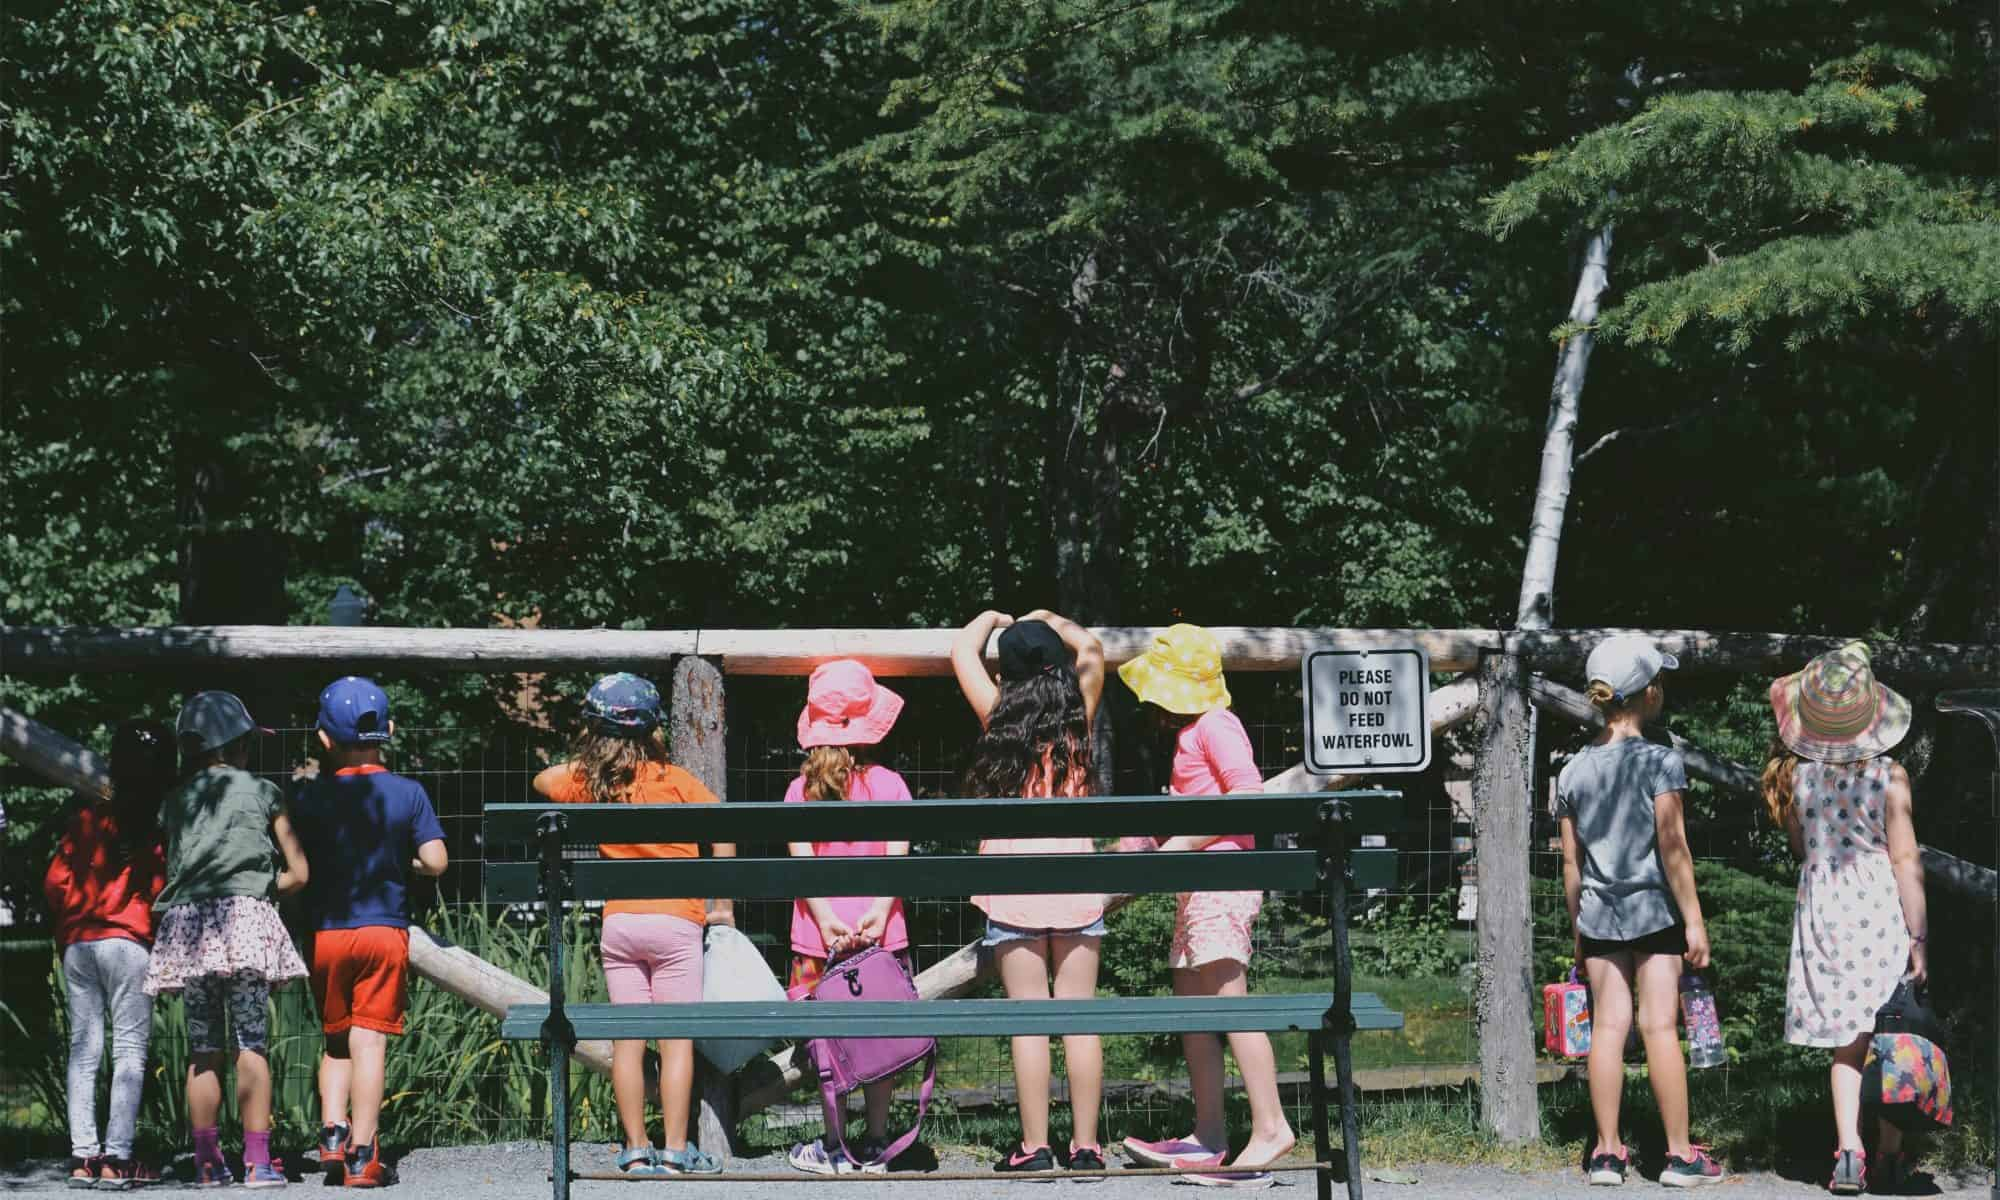 Kids peering over and through an exhibit fence